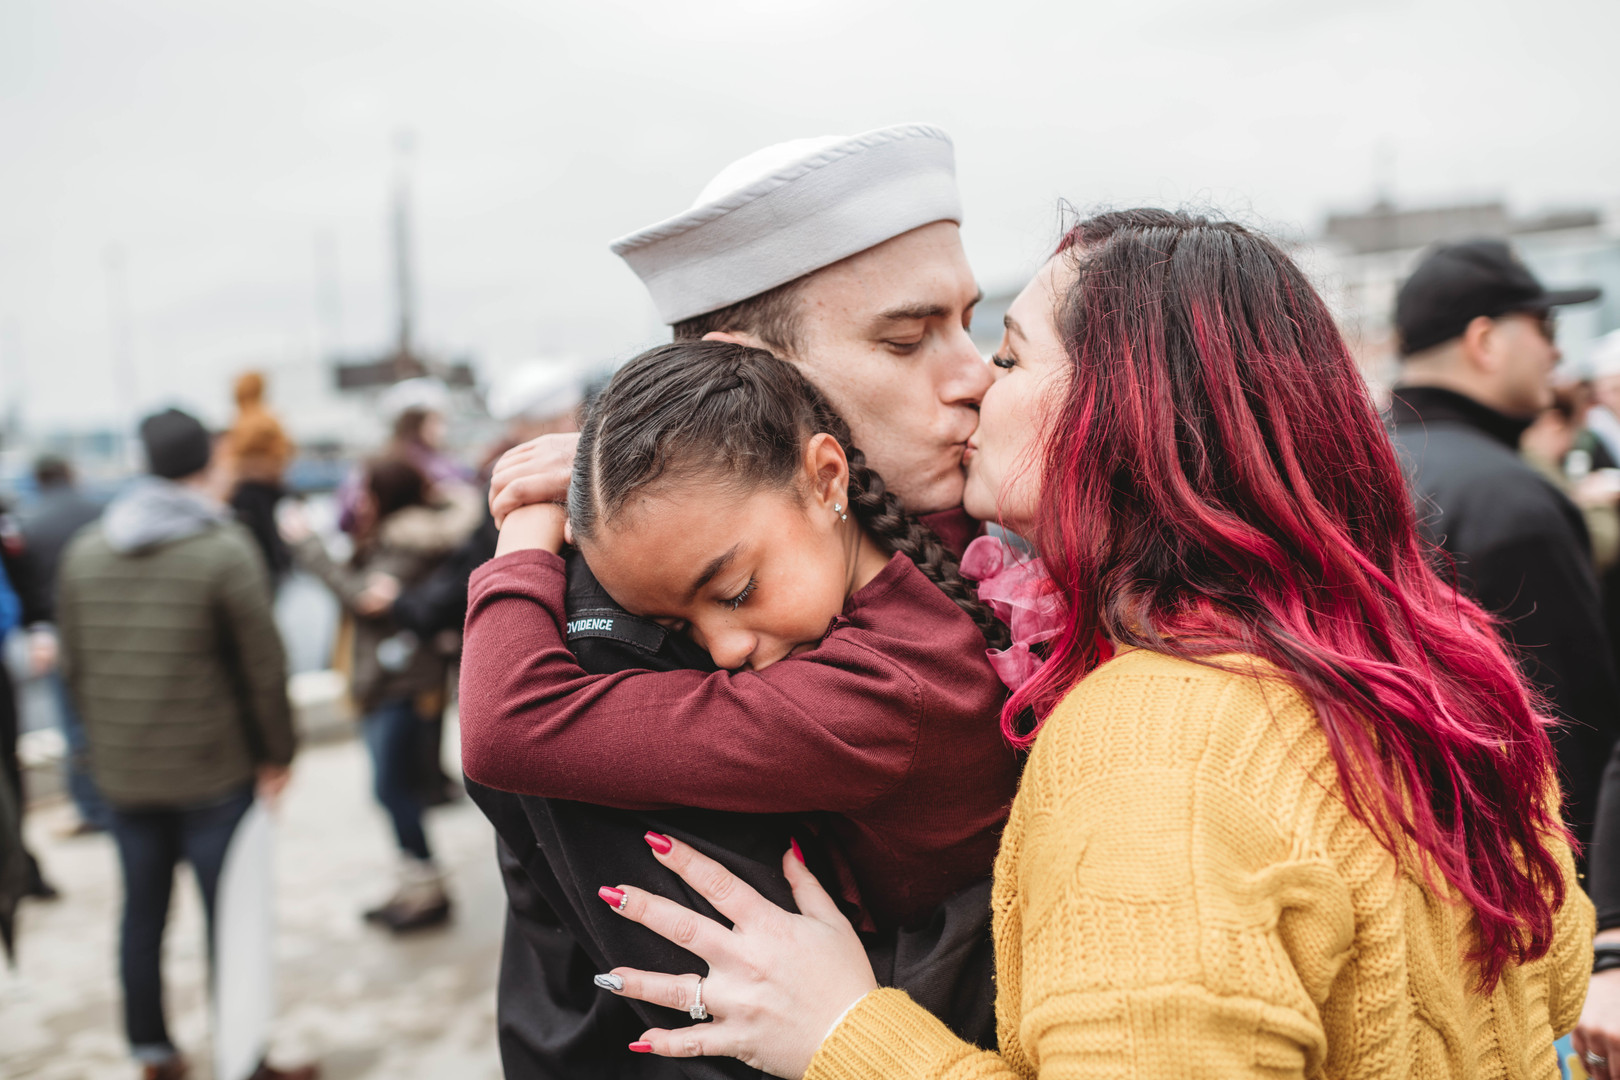 Couple kissing on pier after long deployment